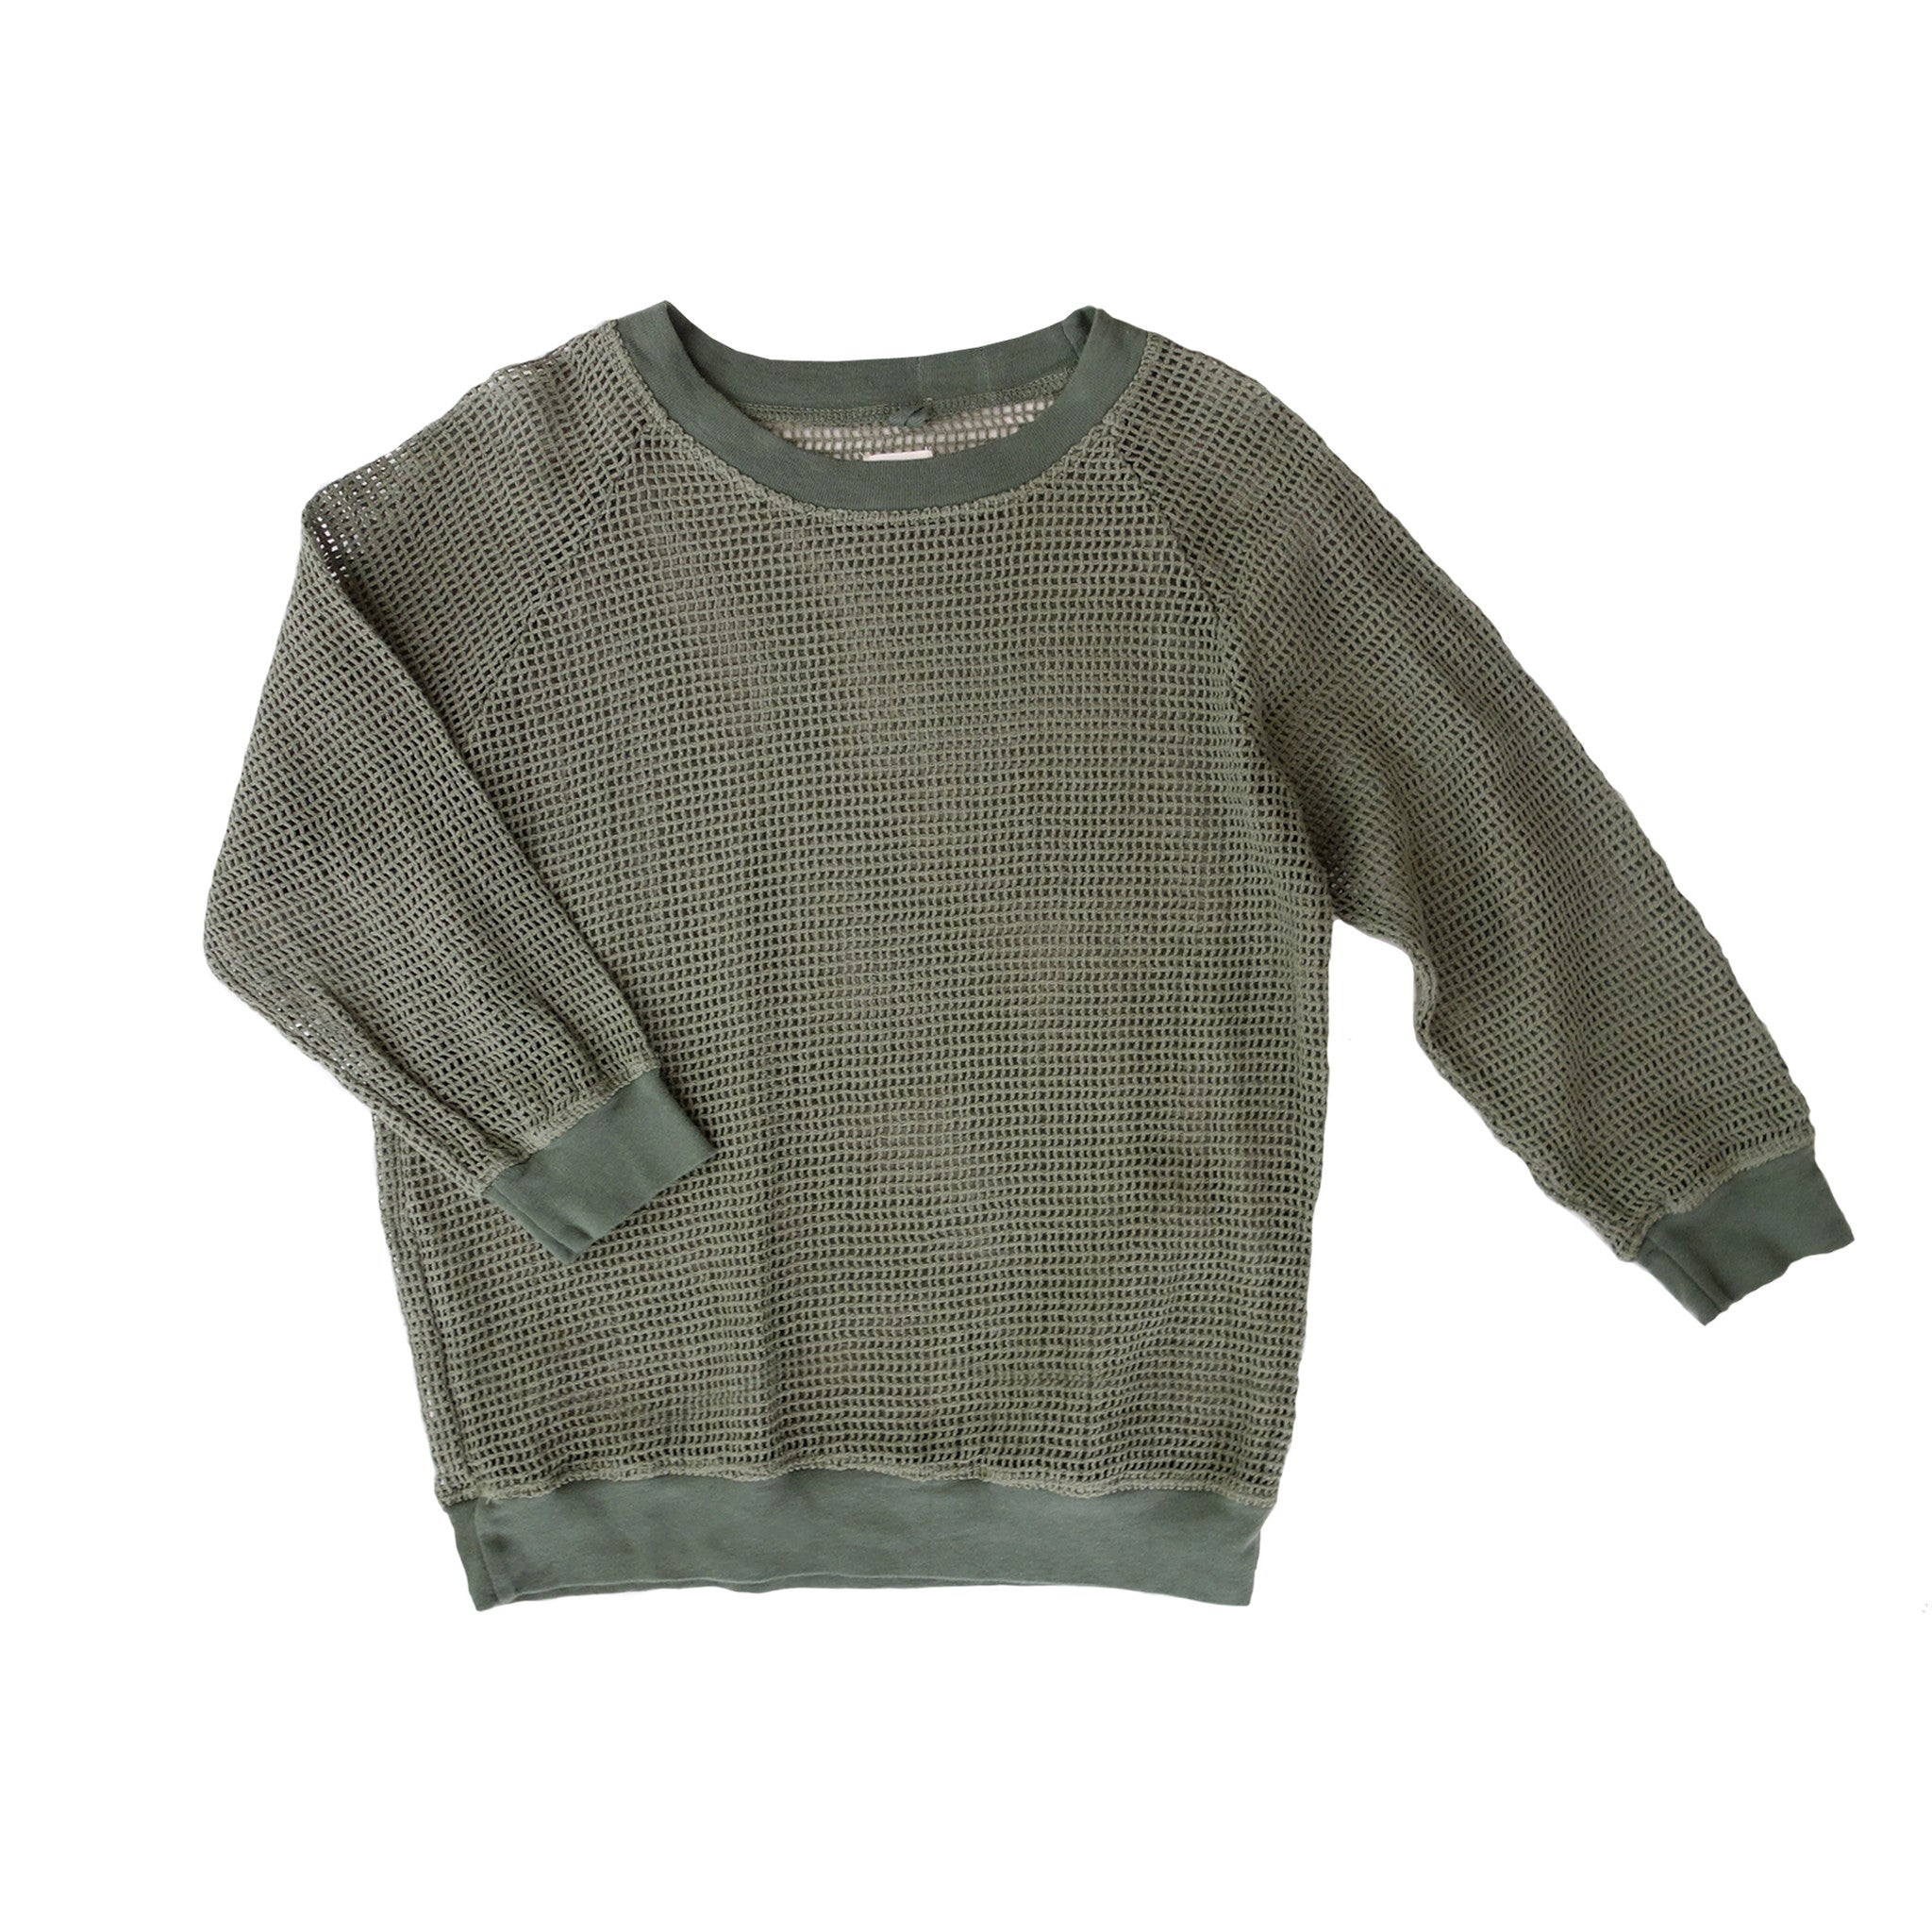 Nico Nico Banzai Kid's Long Sleeve Mesh Pullover in Palm | BIEN BIEN